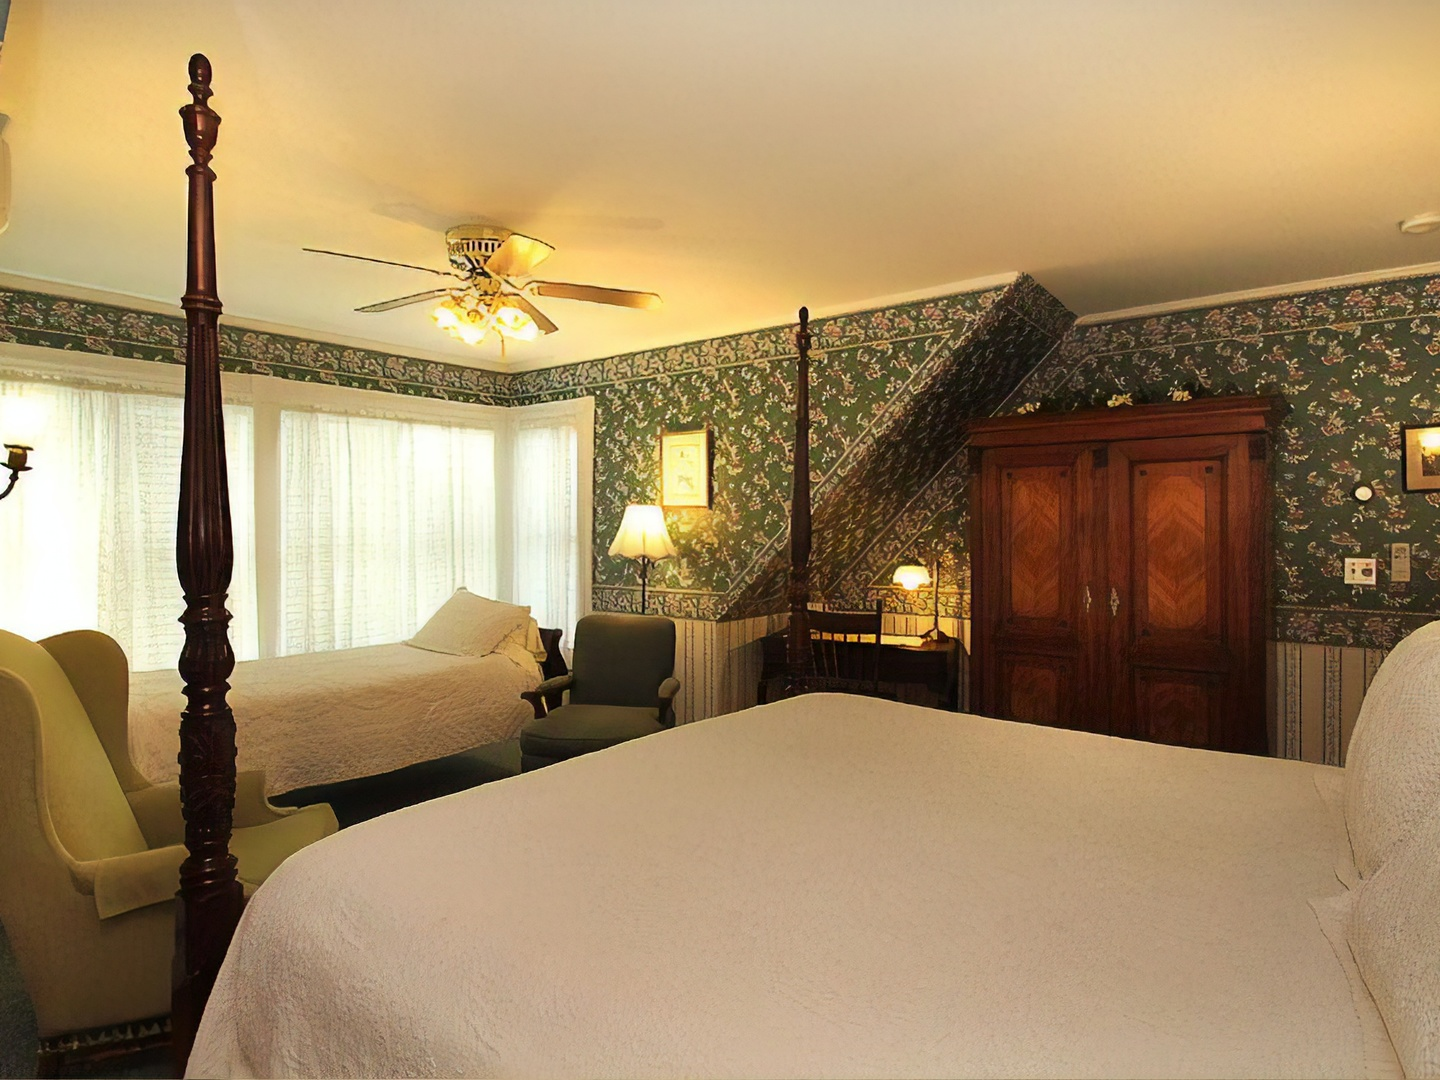 A bedroom with a large bed in a room at Manor House Inn.